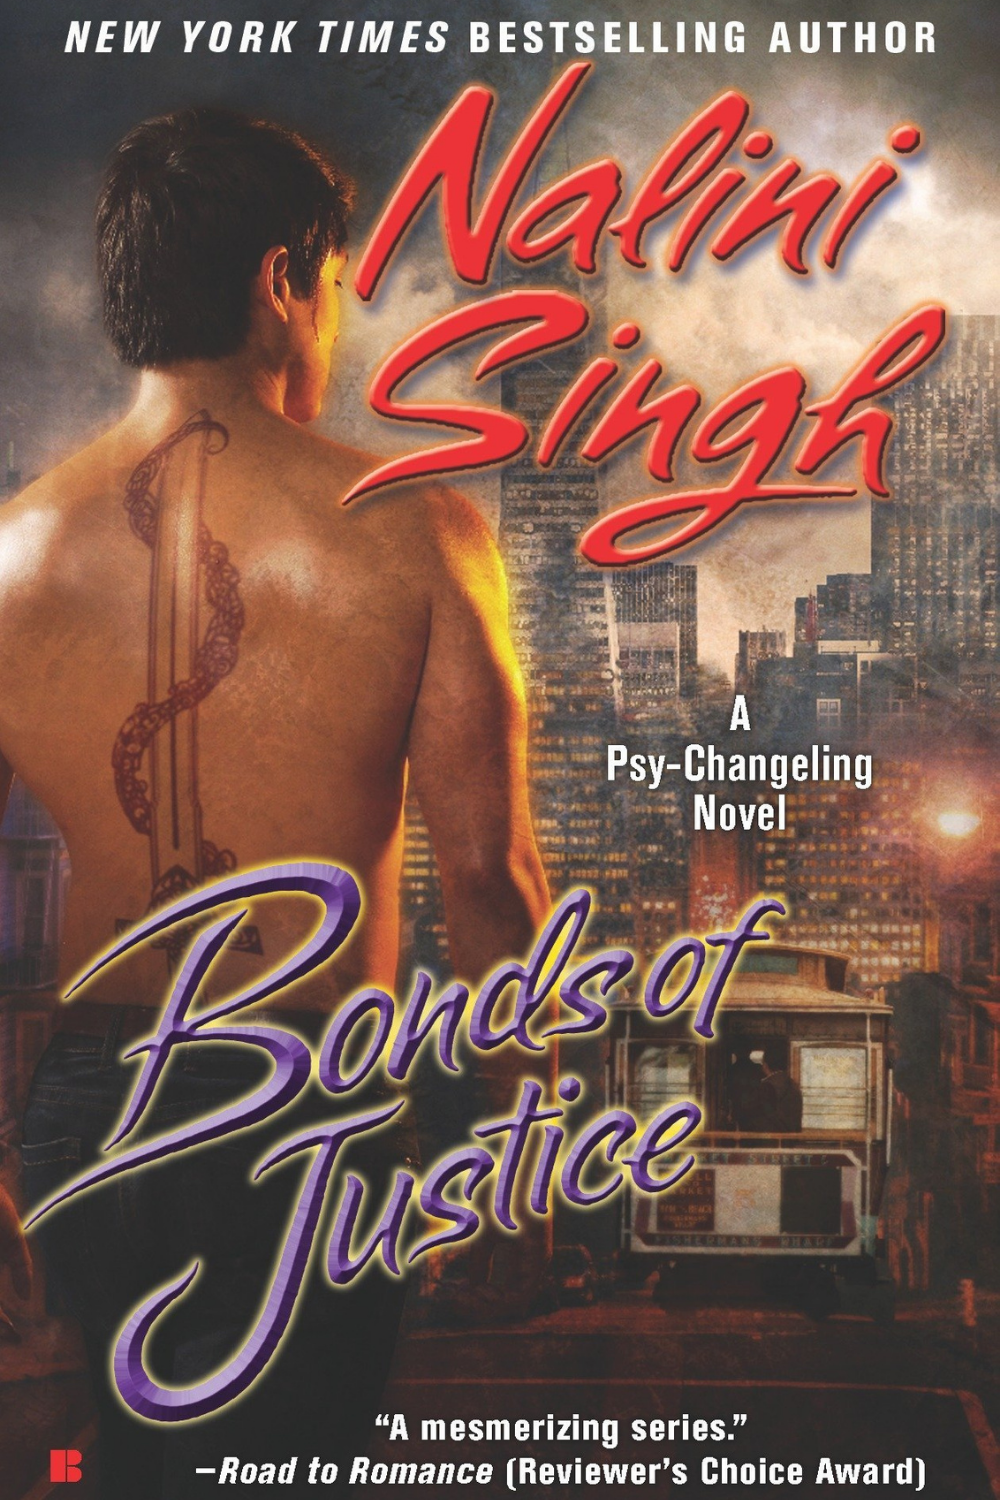 S2 E18 Bonds of Justice by Nalini Singh